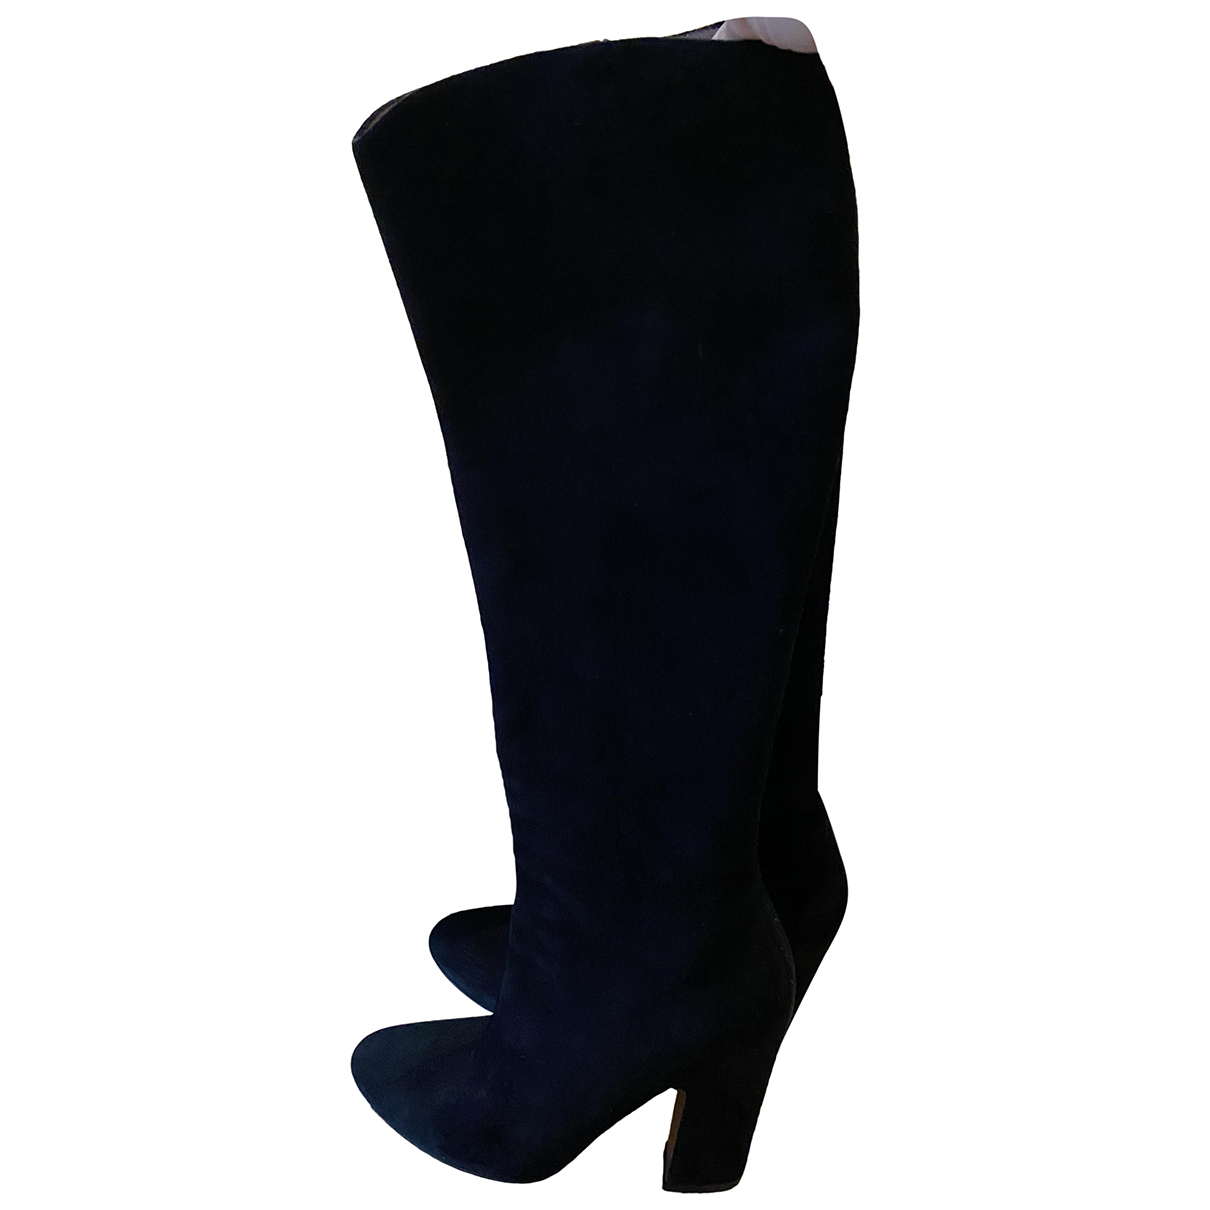 Alaïa N Black Suede Boots for Women 36 EU